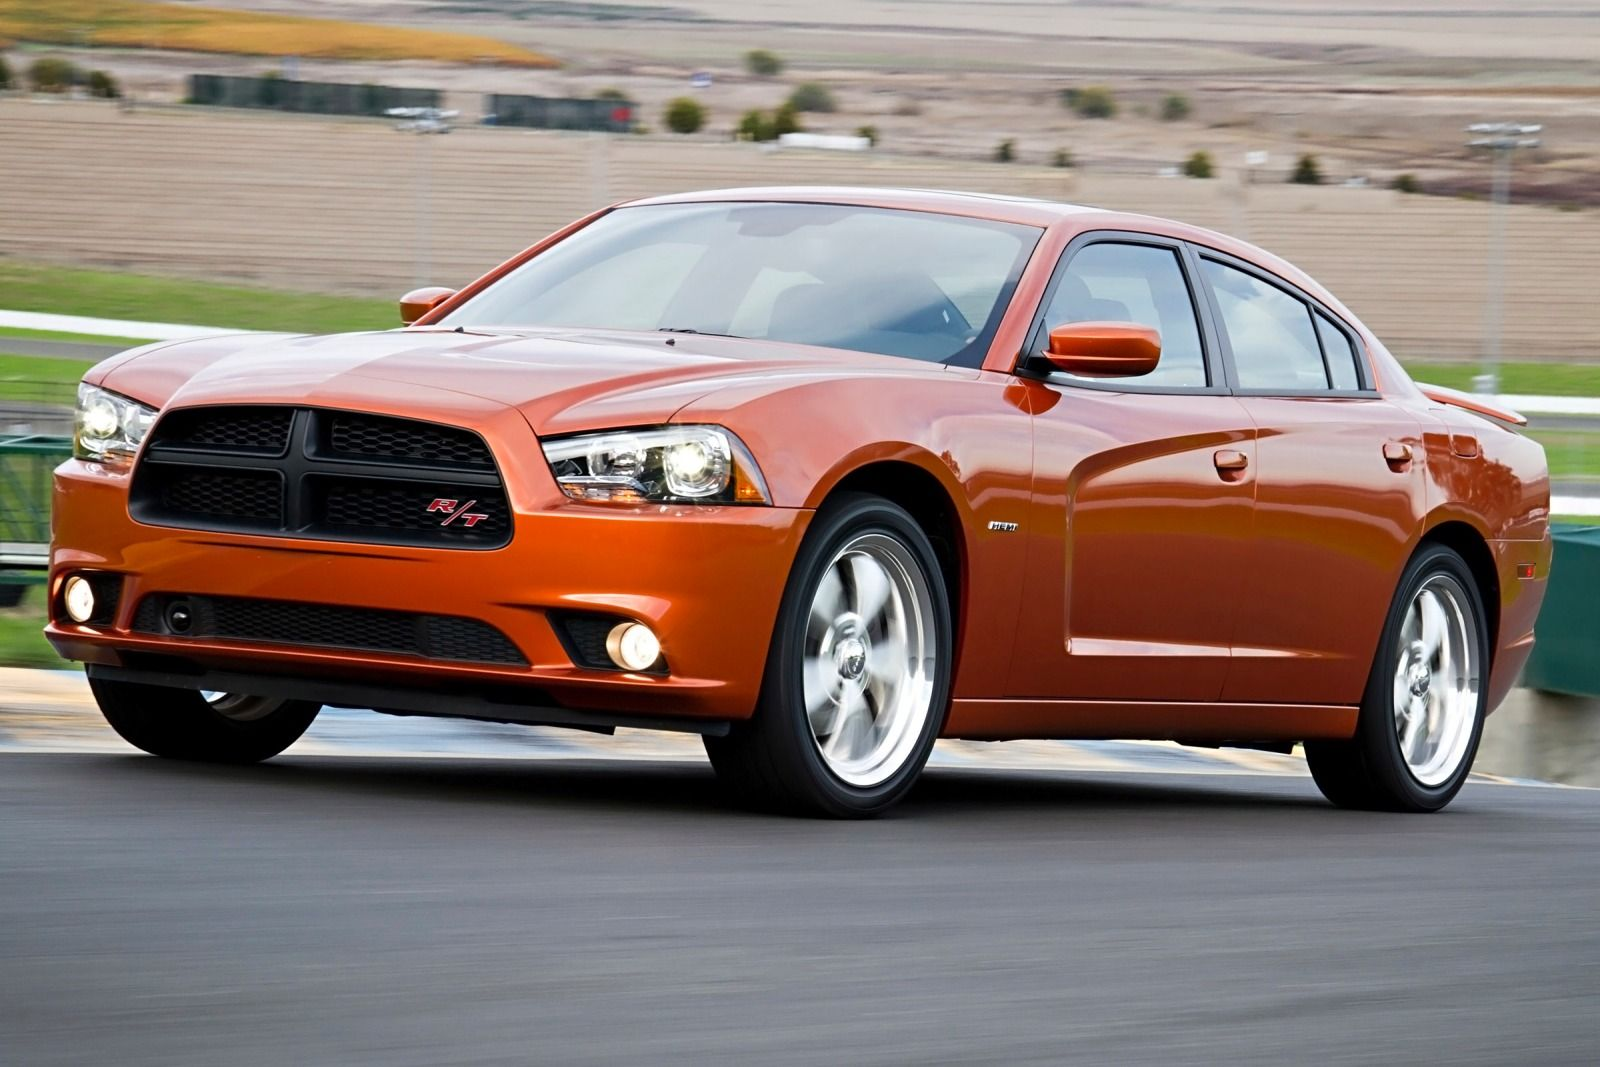 Dodge Charger SXT Fleet #2